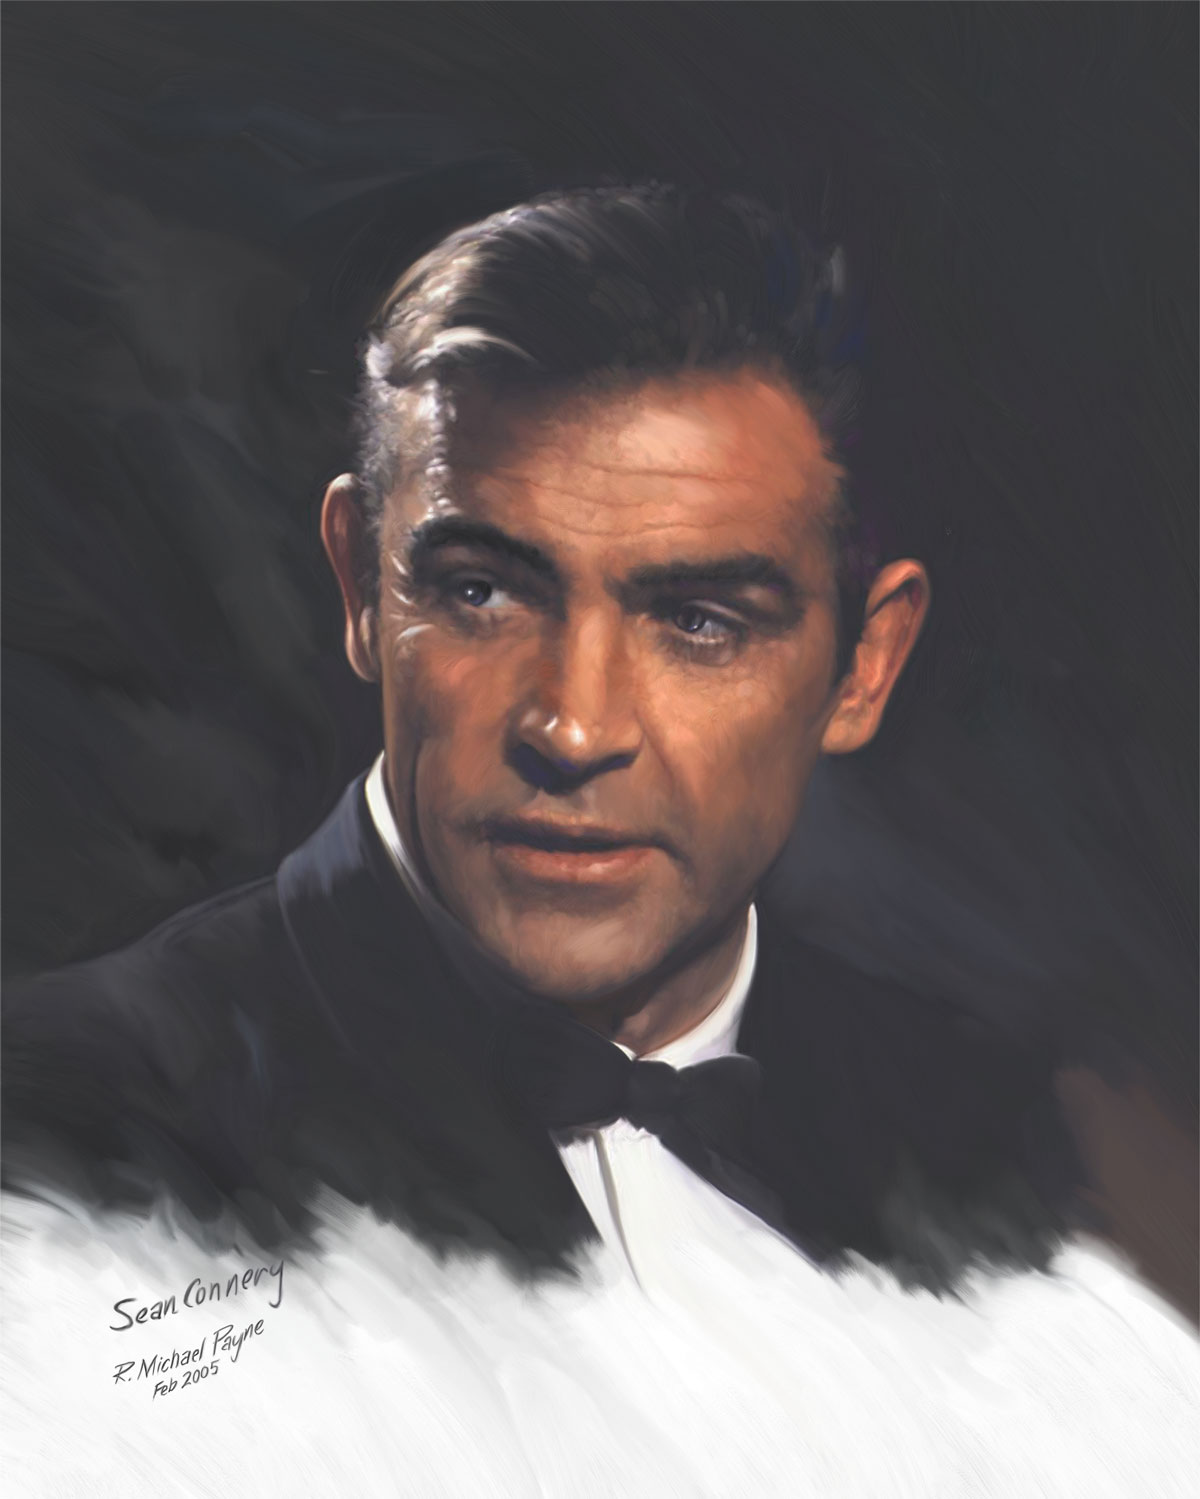 8-portrait-5-sean-connery